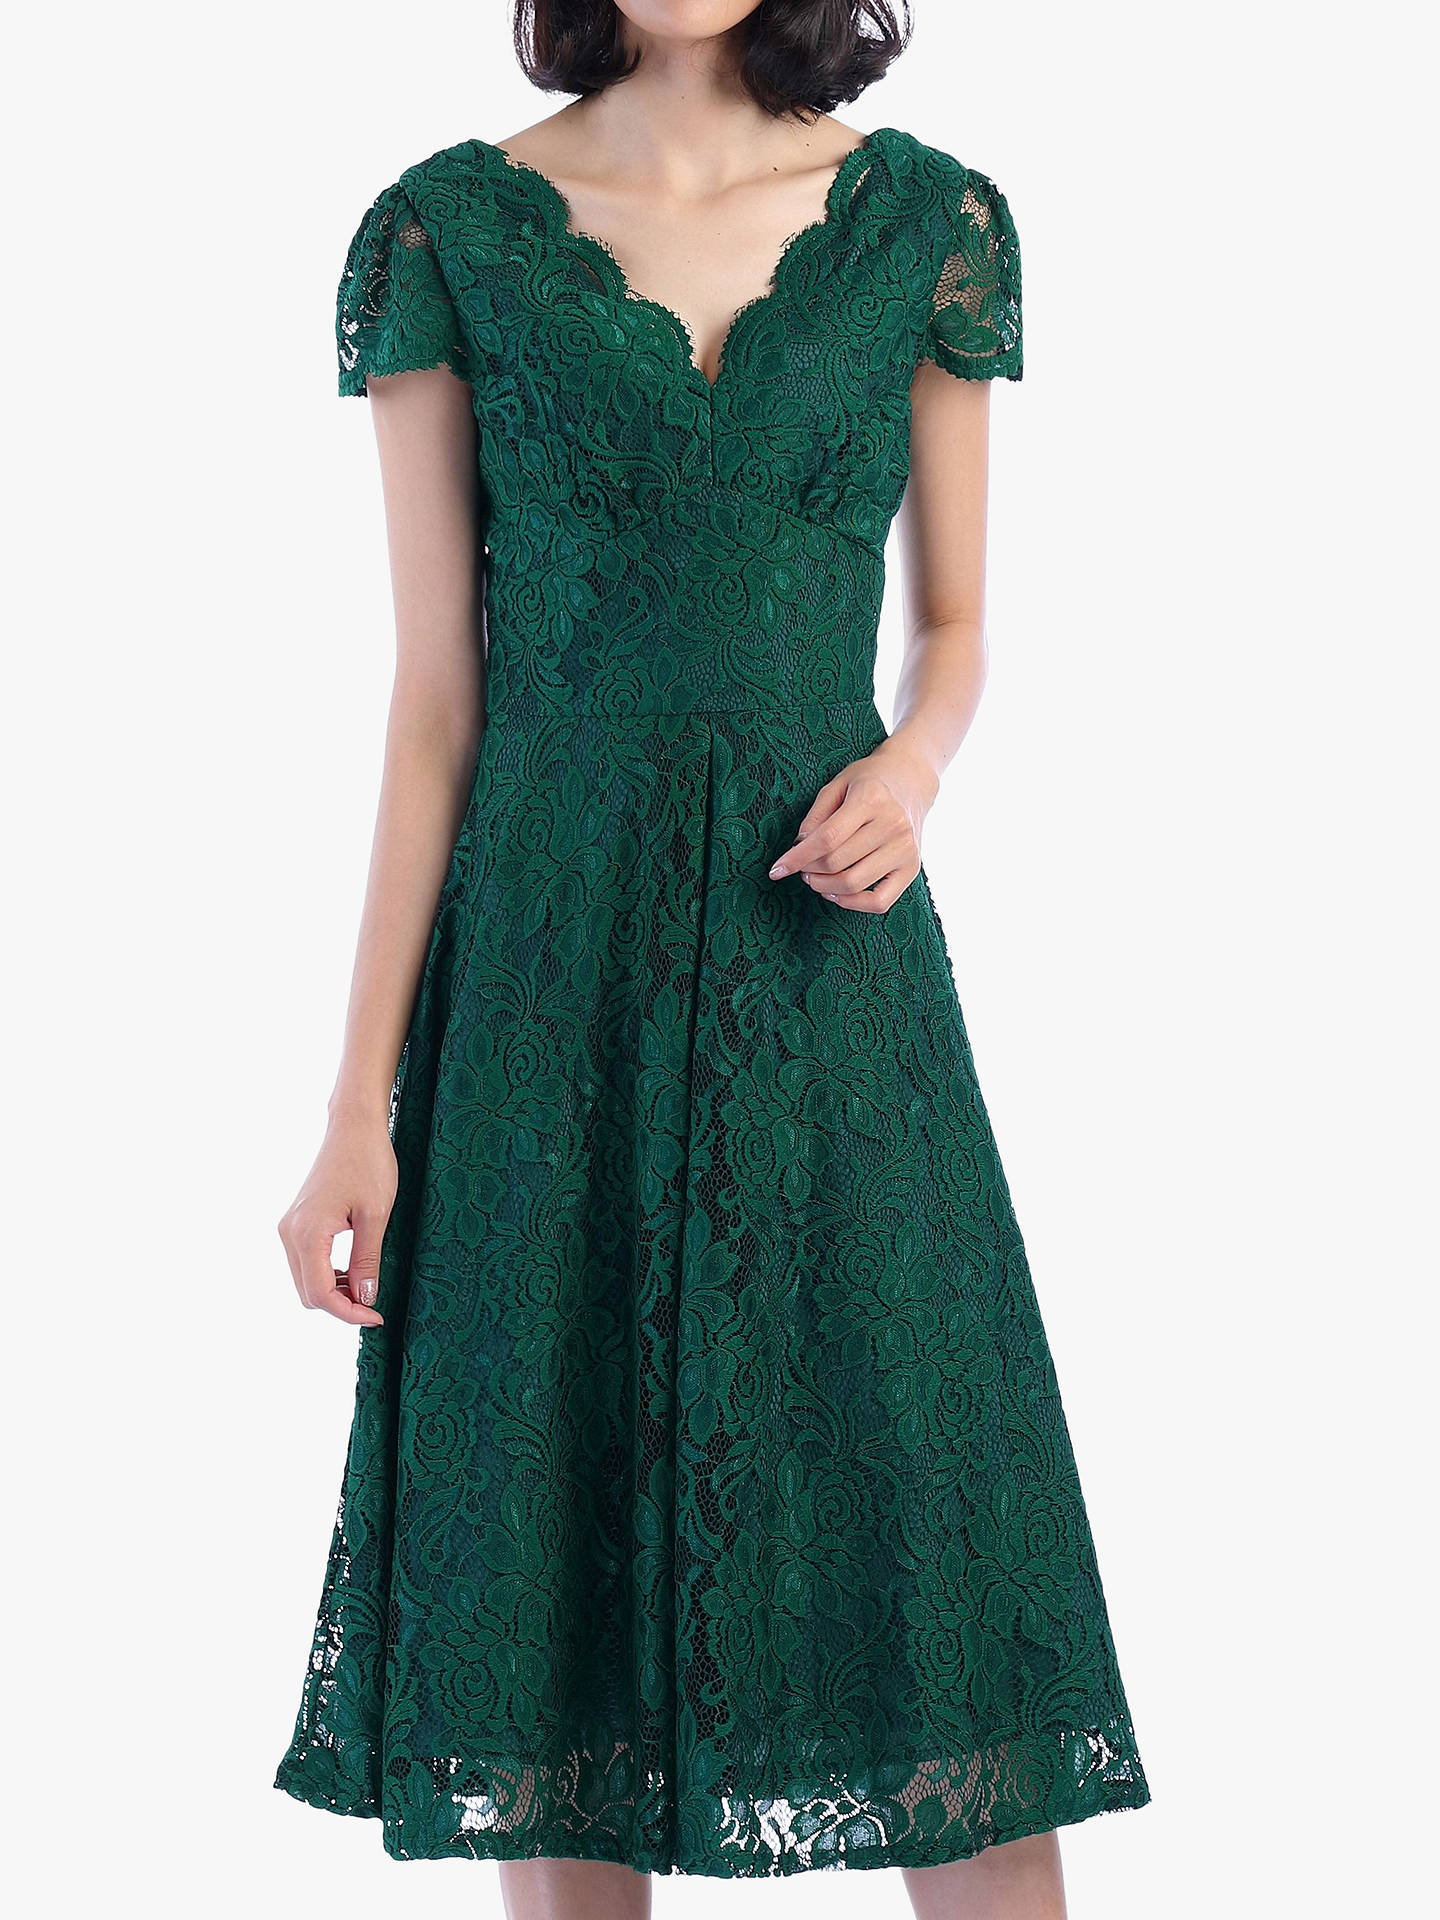 BuyJolie Moi Cap Sleeve Lace Dress, Green, 8 Online at johnlewis.com